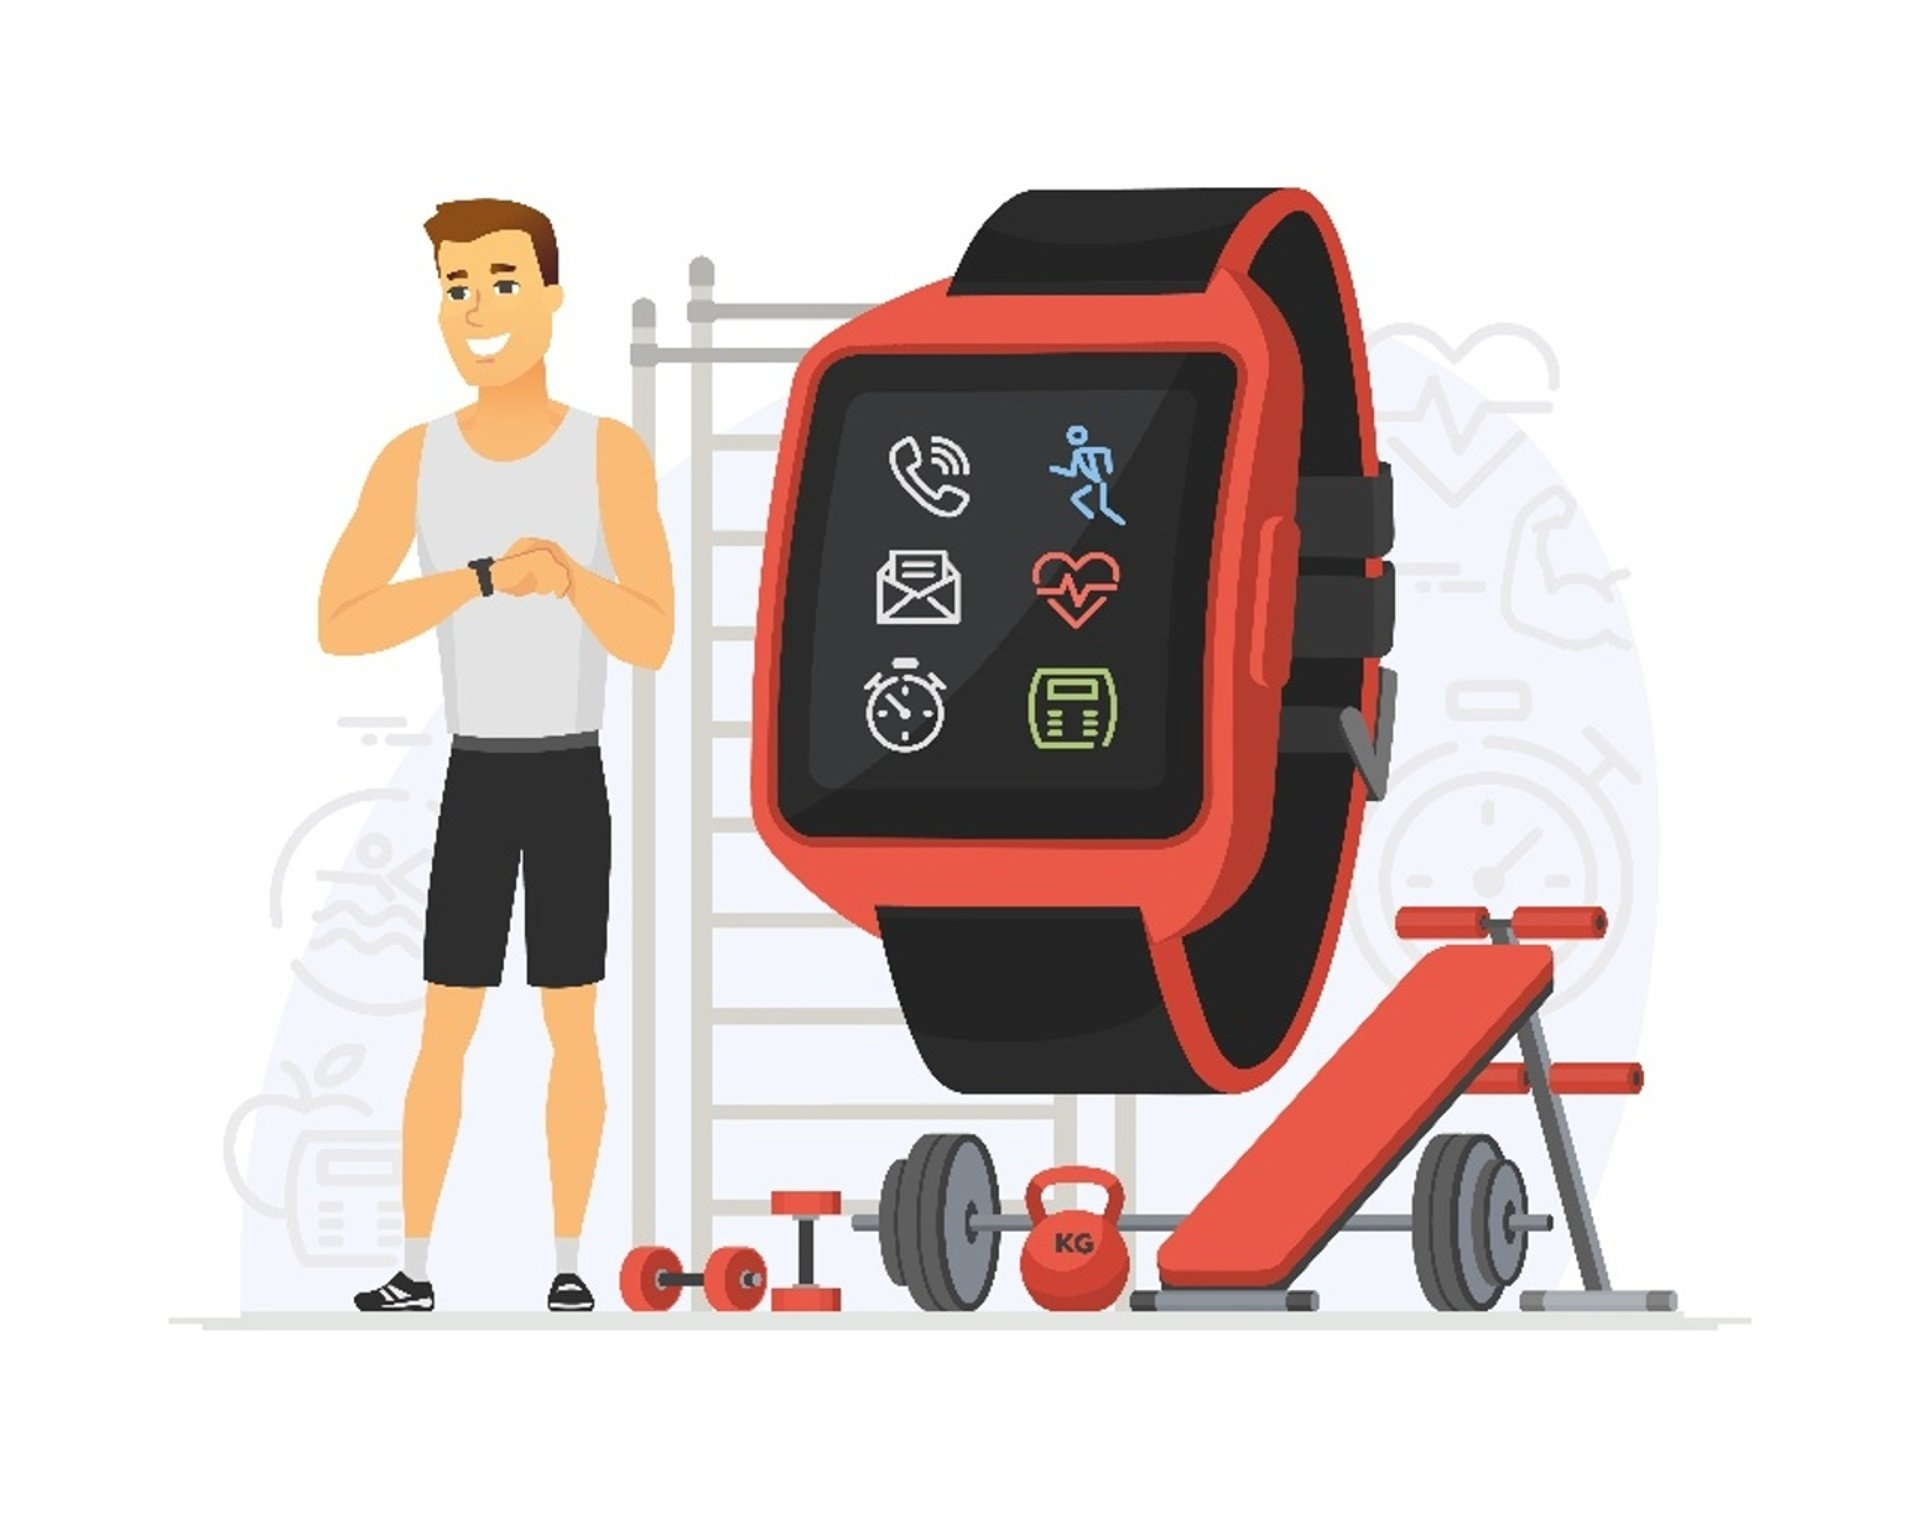 Gamified fitness tracker